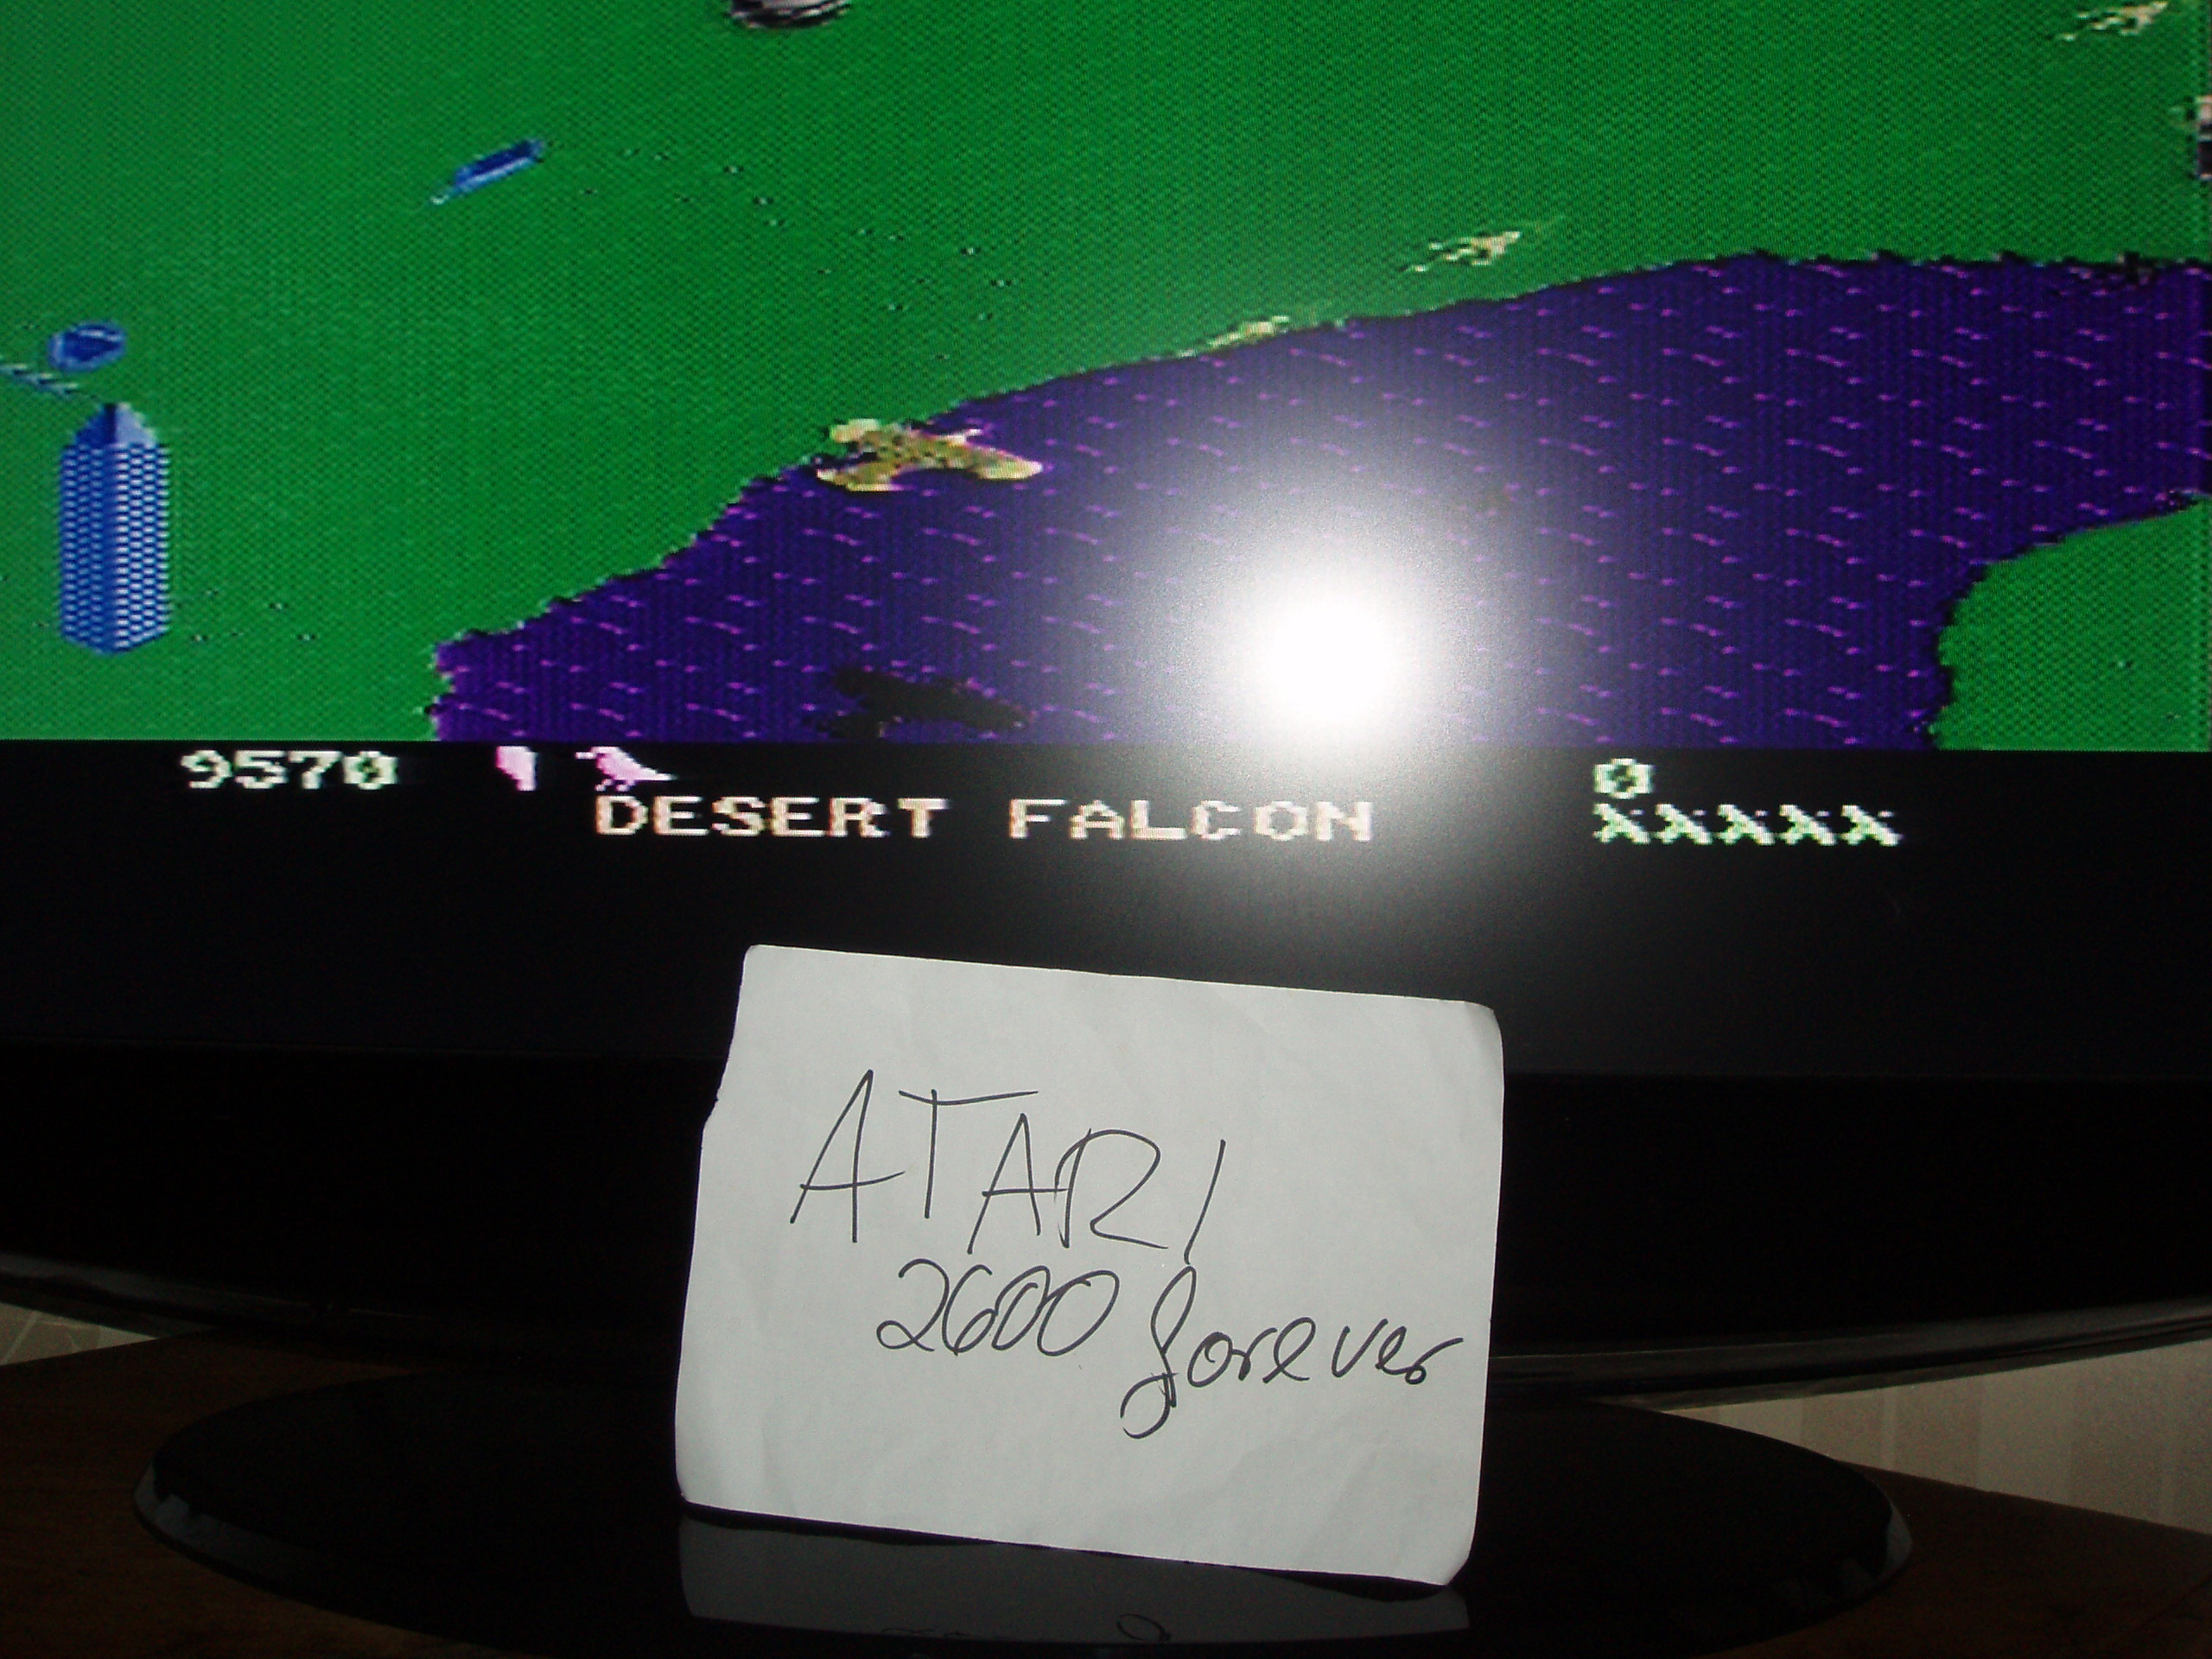 atari2600forever: Desert Falcon: Novice (Atari 7800) 9,570 points on 2018-09-10 03:27:59